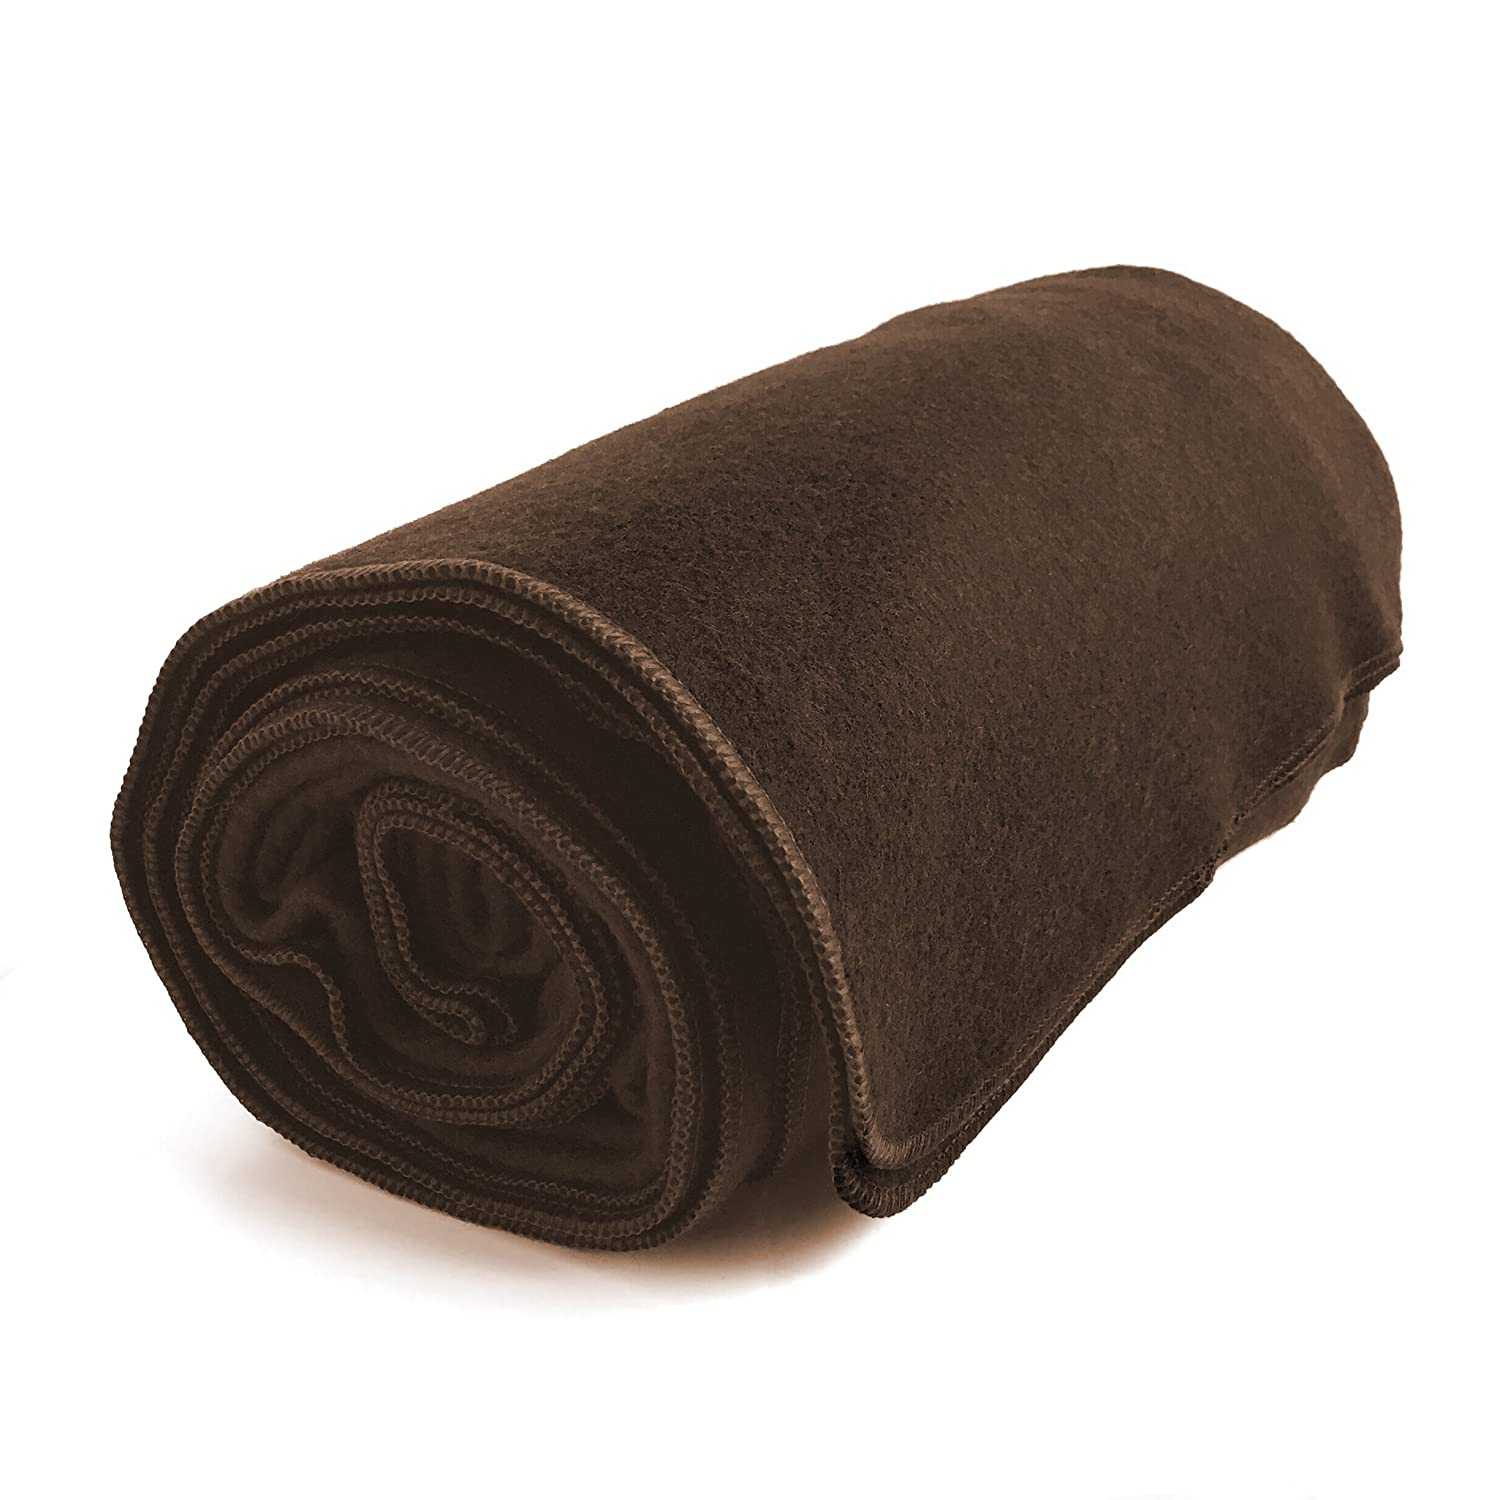 EKTOS 80% Wool Blanket, Brown, Light & Warm 3.7 lbs, Large Washable 66″x90″ Size, Perfect for Outdoor Camping, Survival & Emergency Preparedness Use